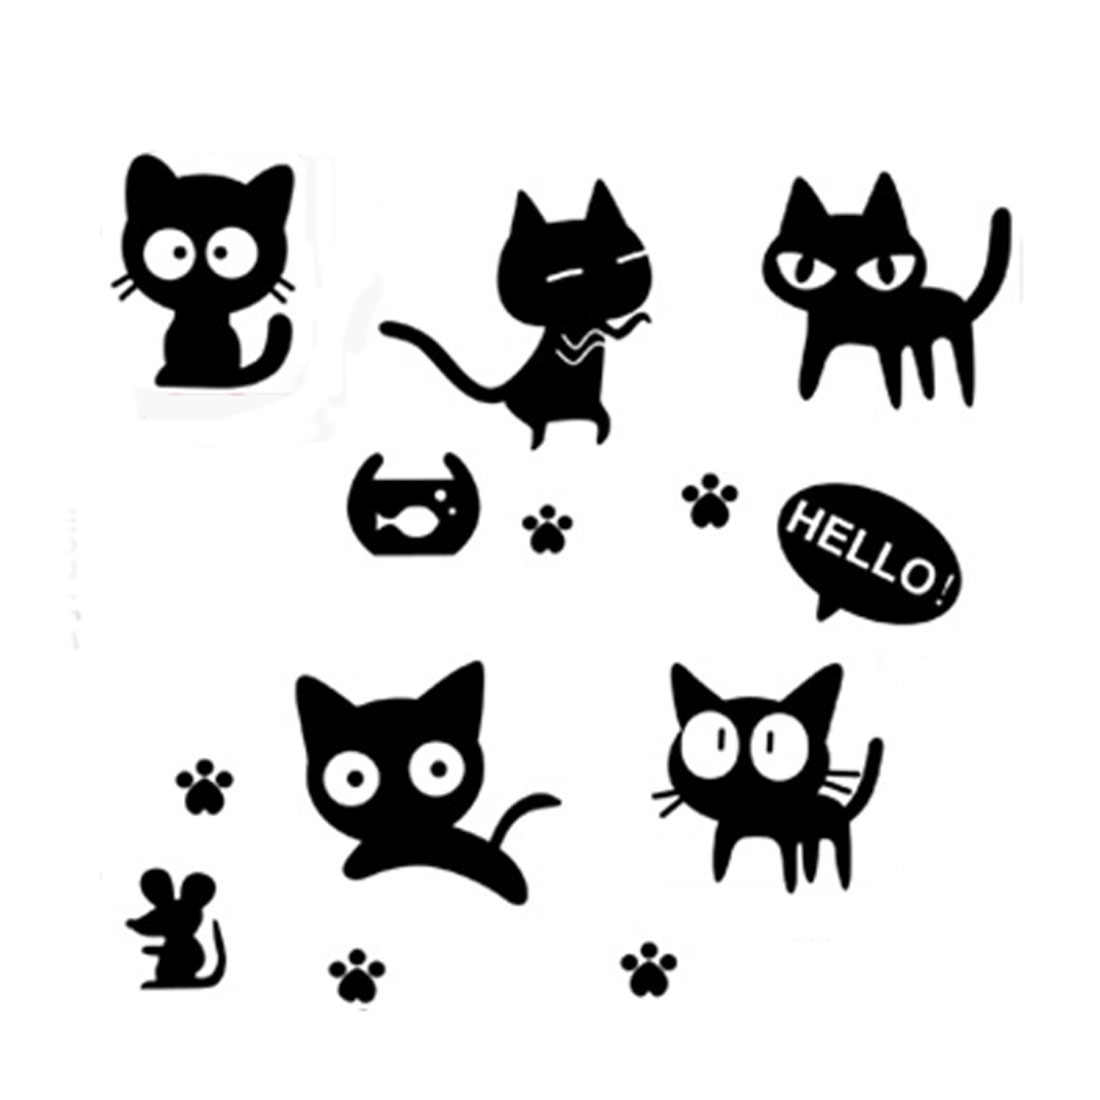 Black Cats Pattern Removable Wall Sticker Decal Wallpaper Room Decor